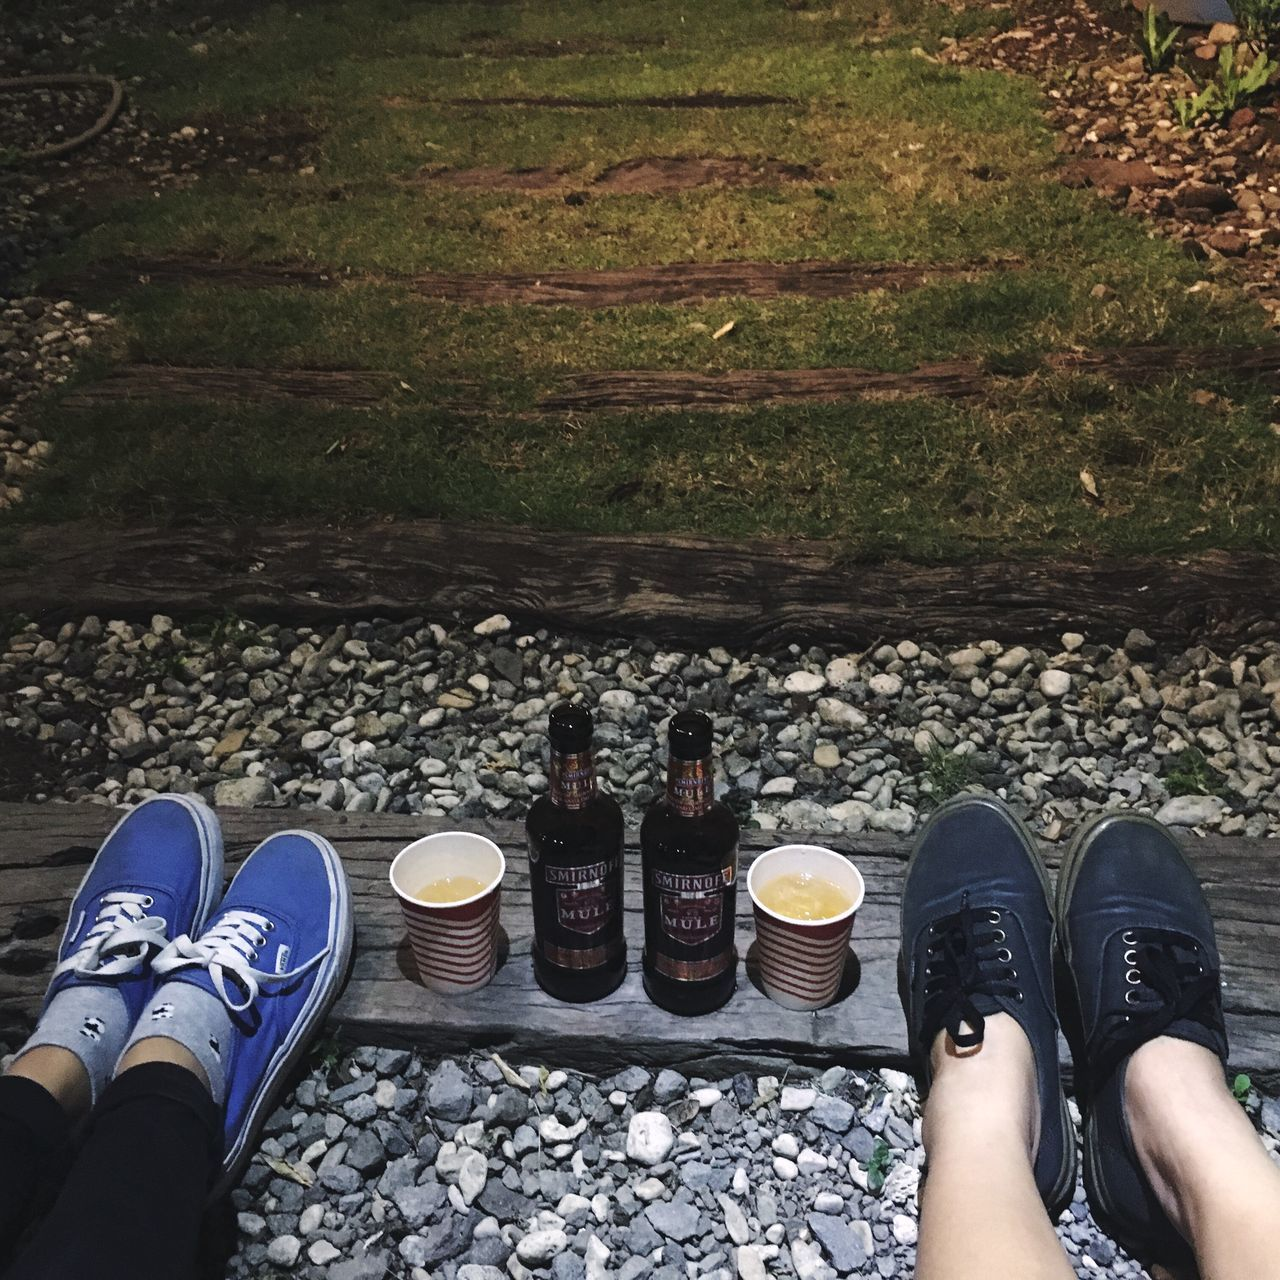 shoe, human leg, low section, personal perspective, standing, human body part, real people, human foot, high angle view, lifestyles, men, two people, friendship, day, directly above, leisure activity, canvas shoe, outdoors, togetherness, women, adult, people